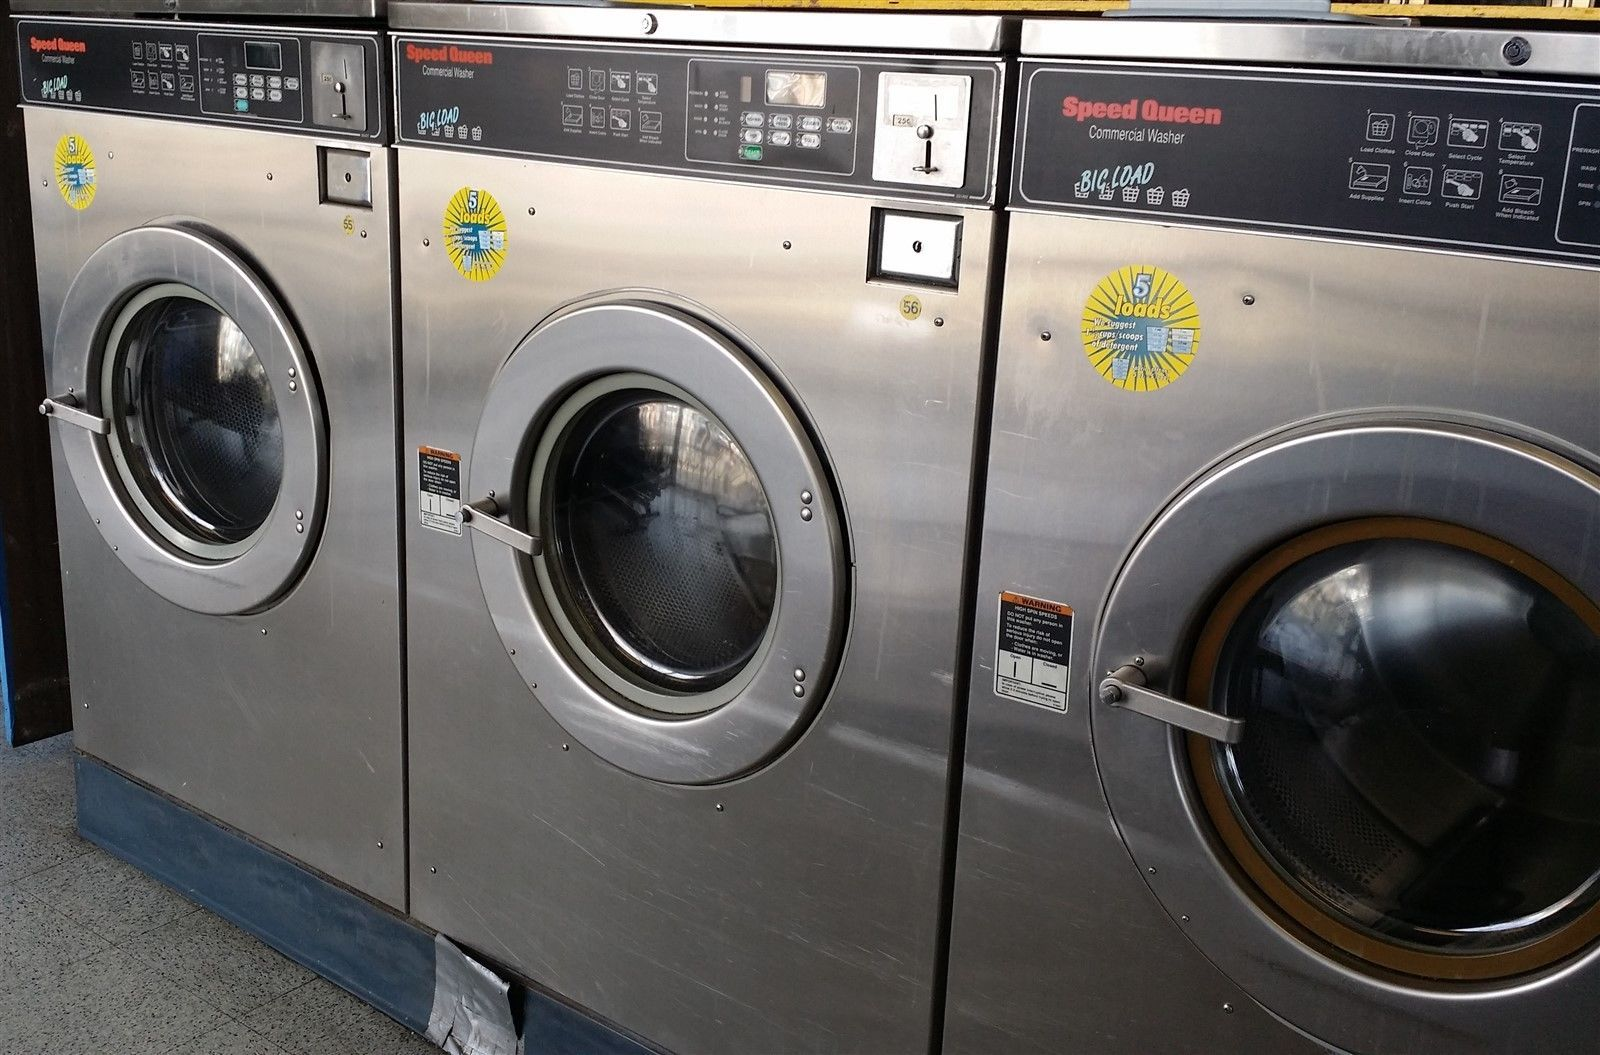 Commerical Washer For Home ~ Speed queen commerical front load washer sc ec ph lb